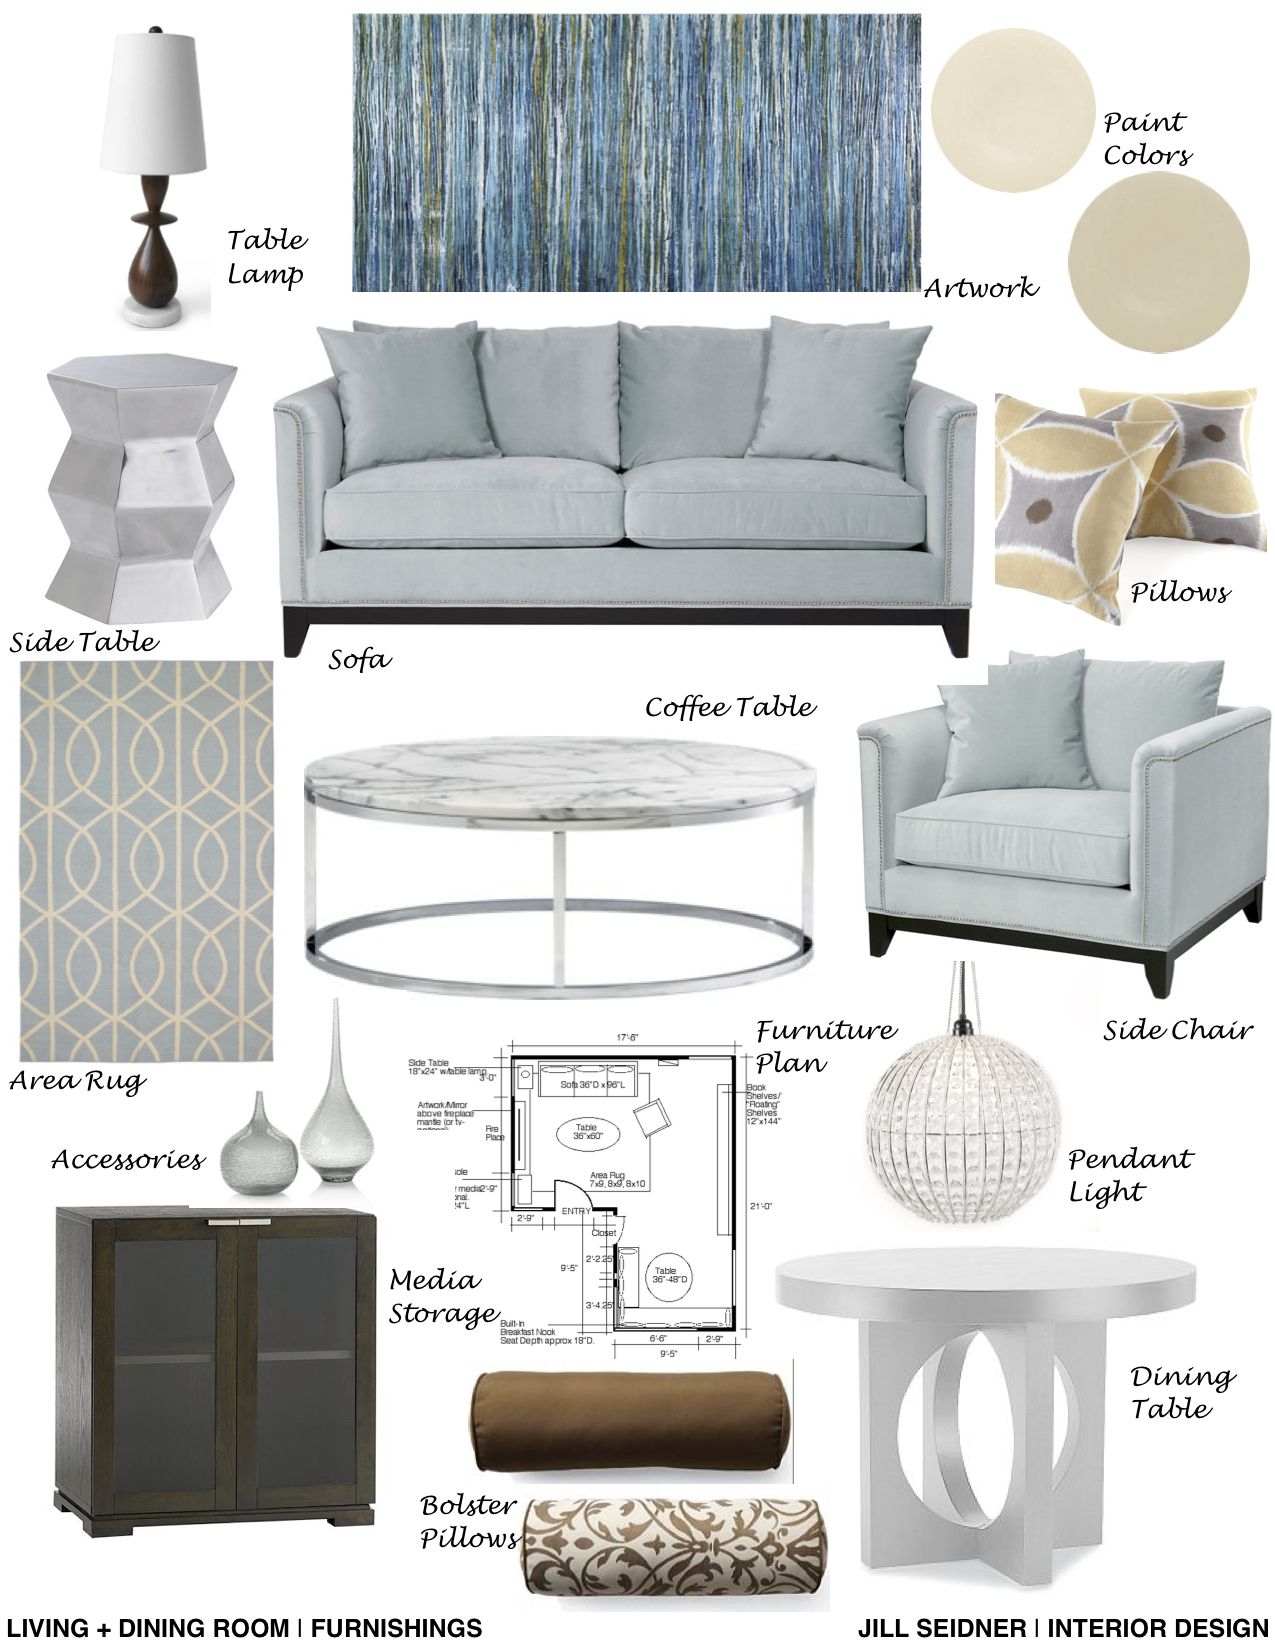 Living room furnishings concept board jill seidner for Furniture board